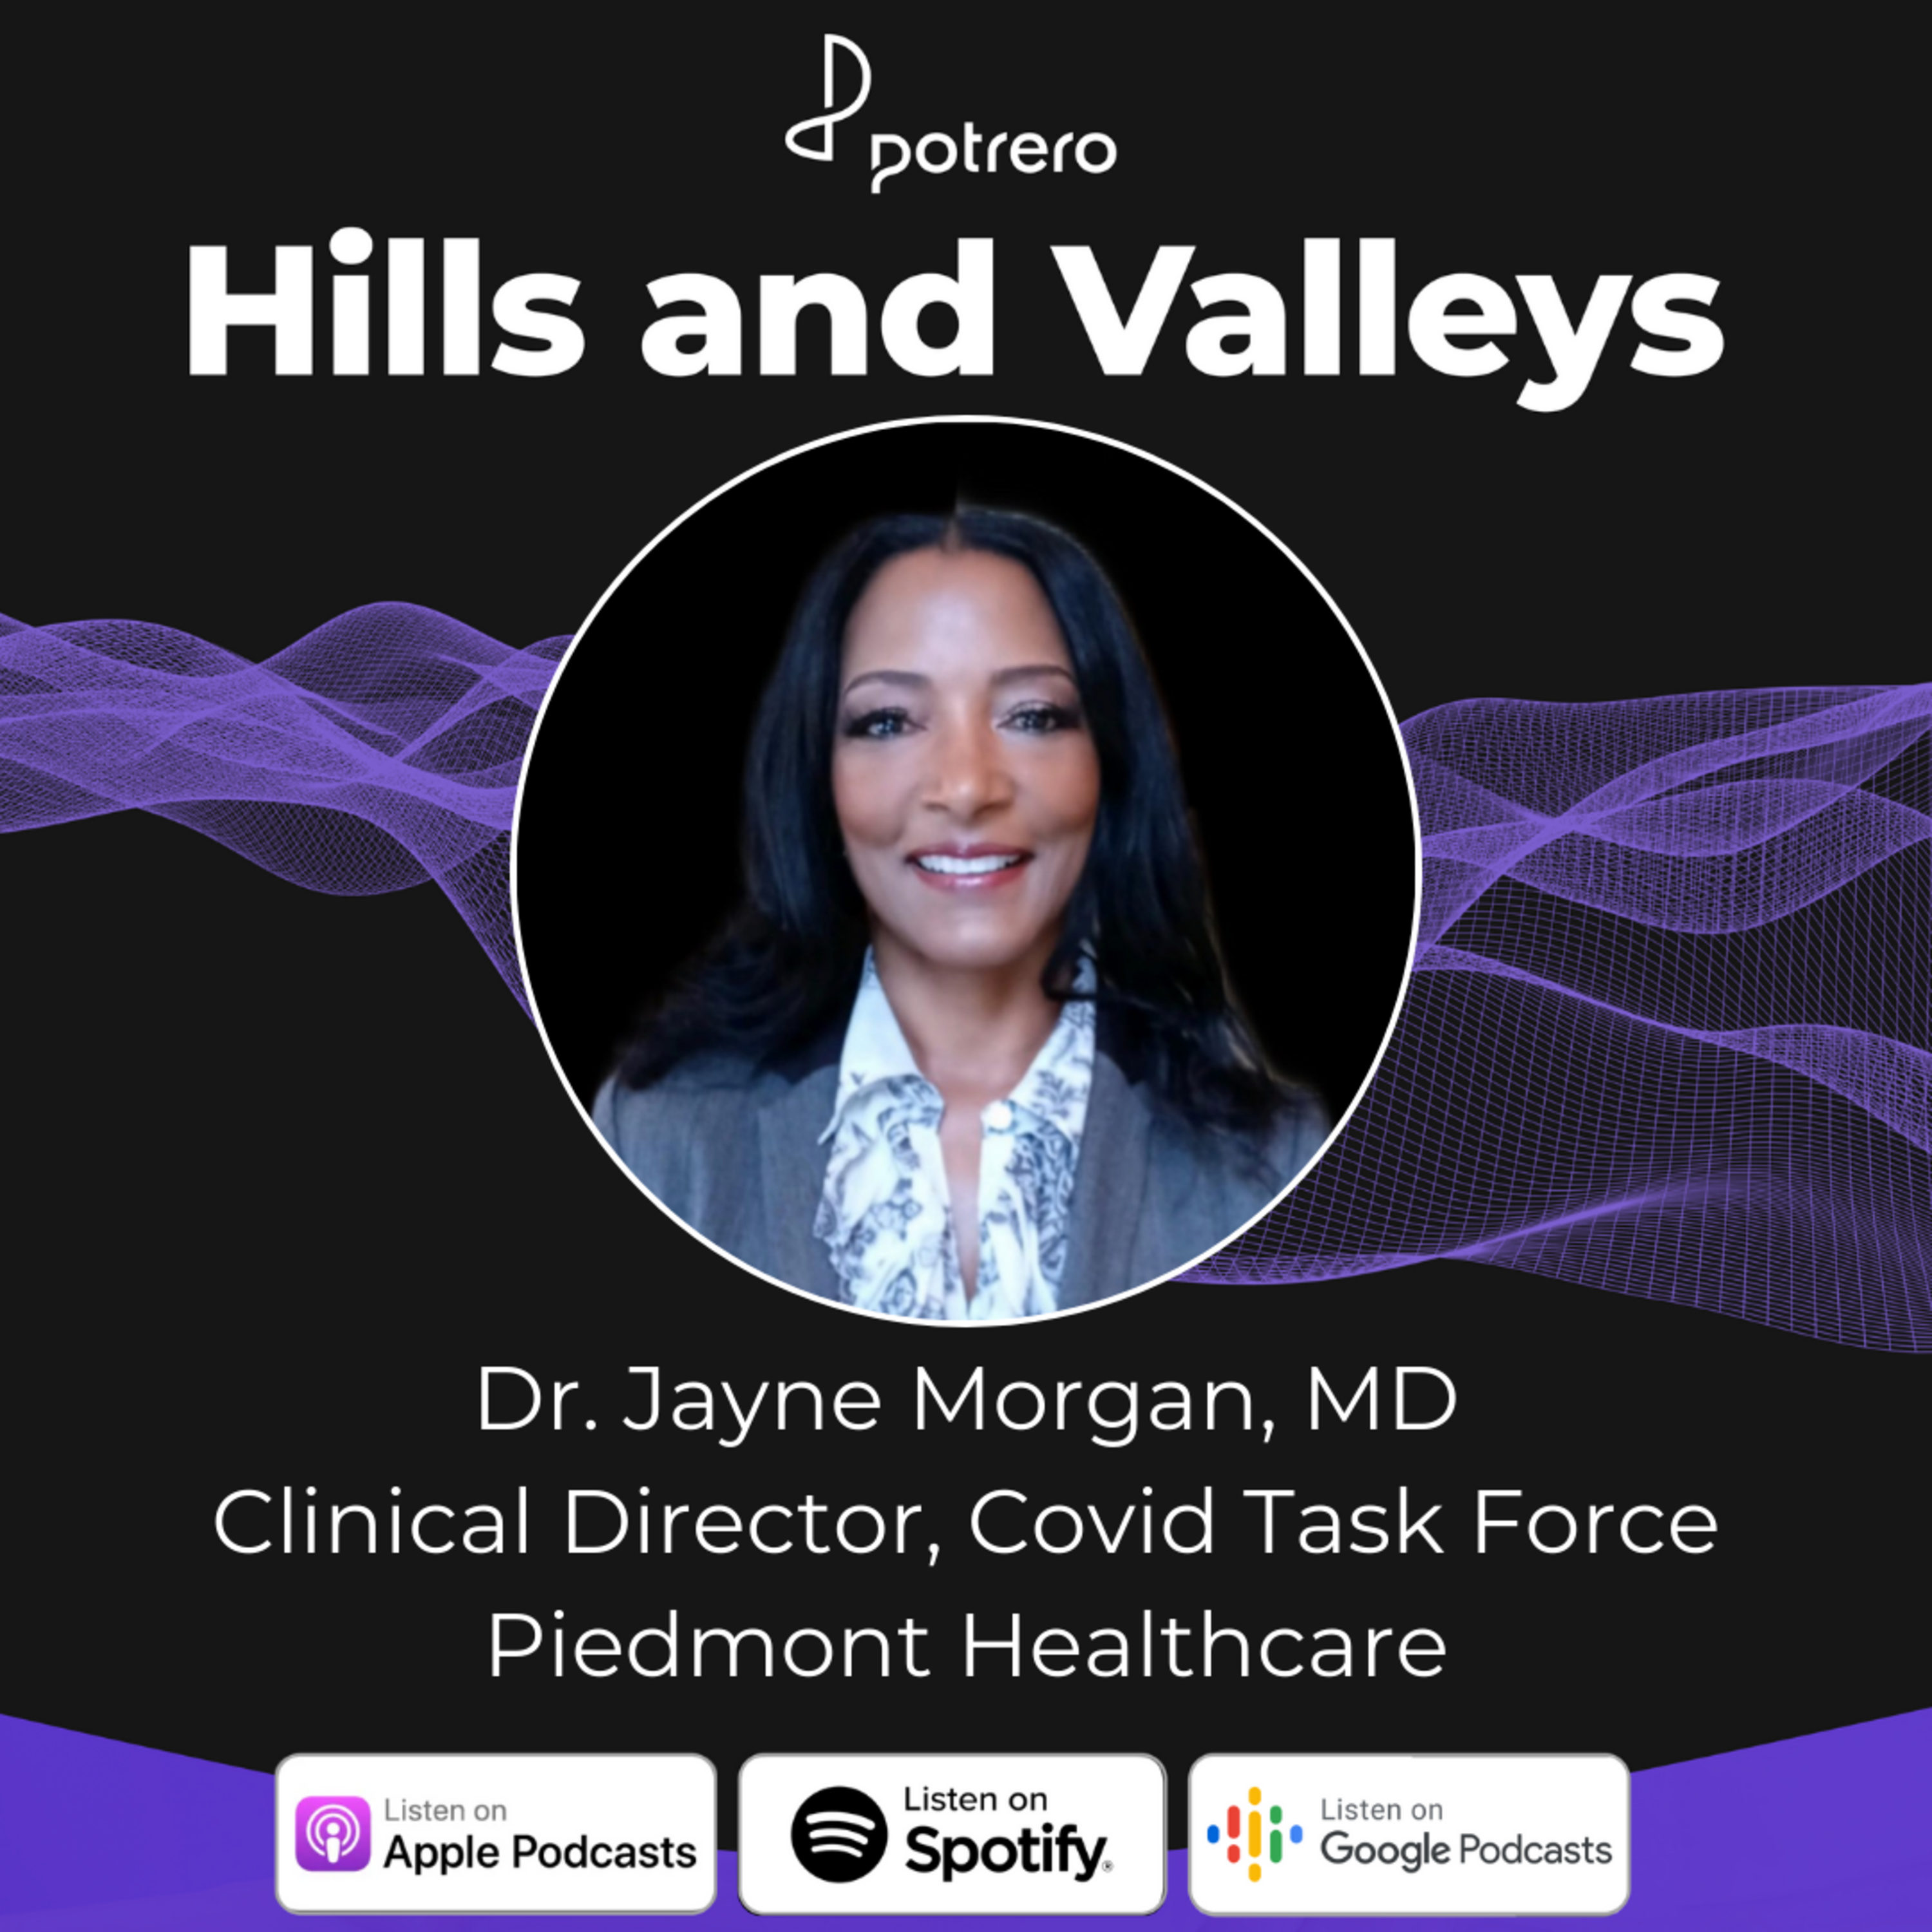 Ep22: Dr. Jayne Morgan, MD - Clinical Director, Covid Task Force at Piedmont Healthcare